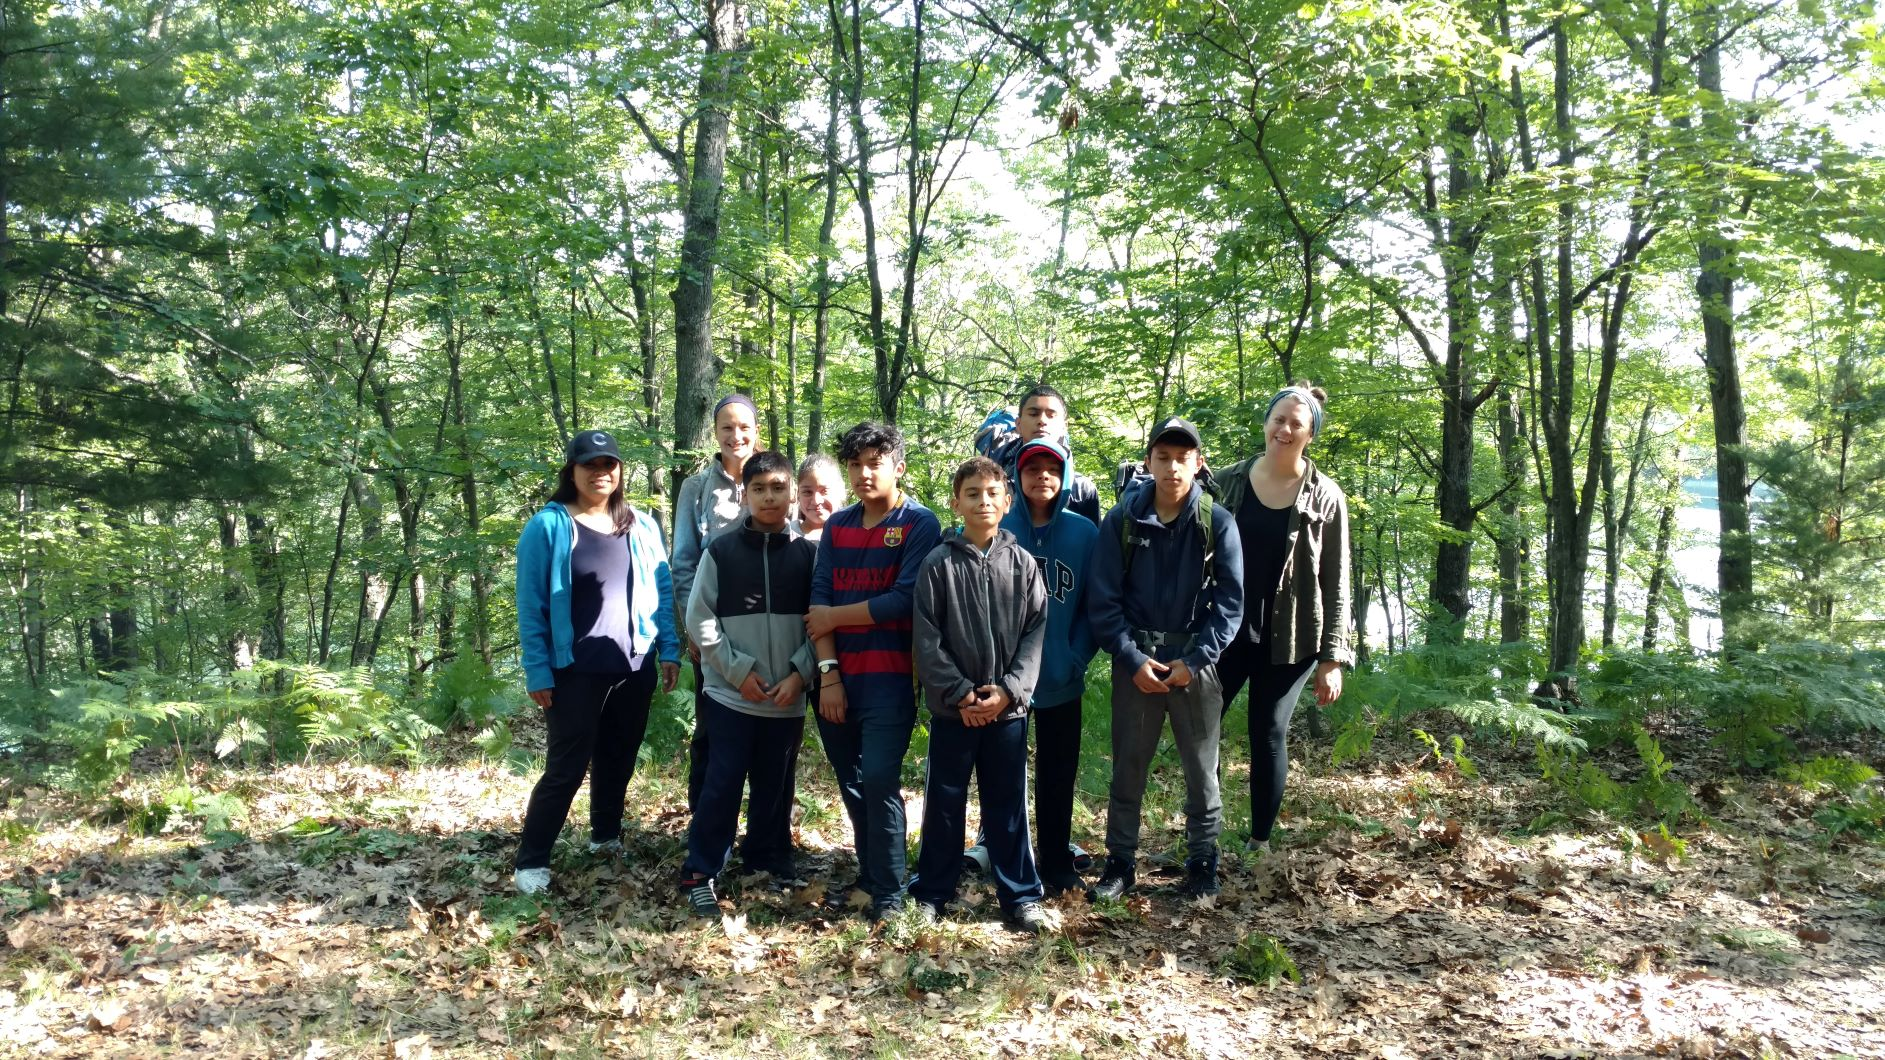 Support Outdoors Empowered Network this fall on the Manistee River Trail.   Help us raise money for OEN - a large portion of your fare goes directly towards ensuring urban youth have accessibility to outdoor programs.